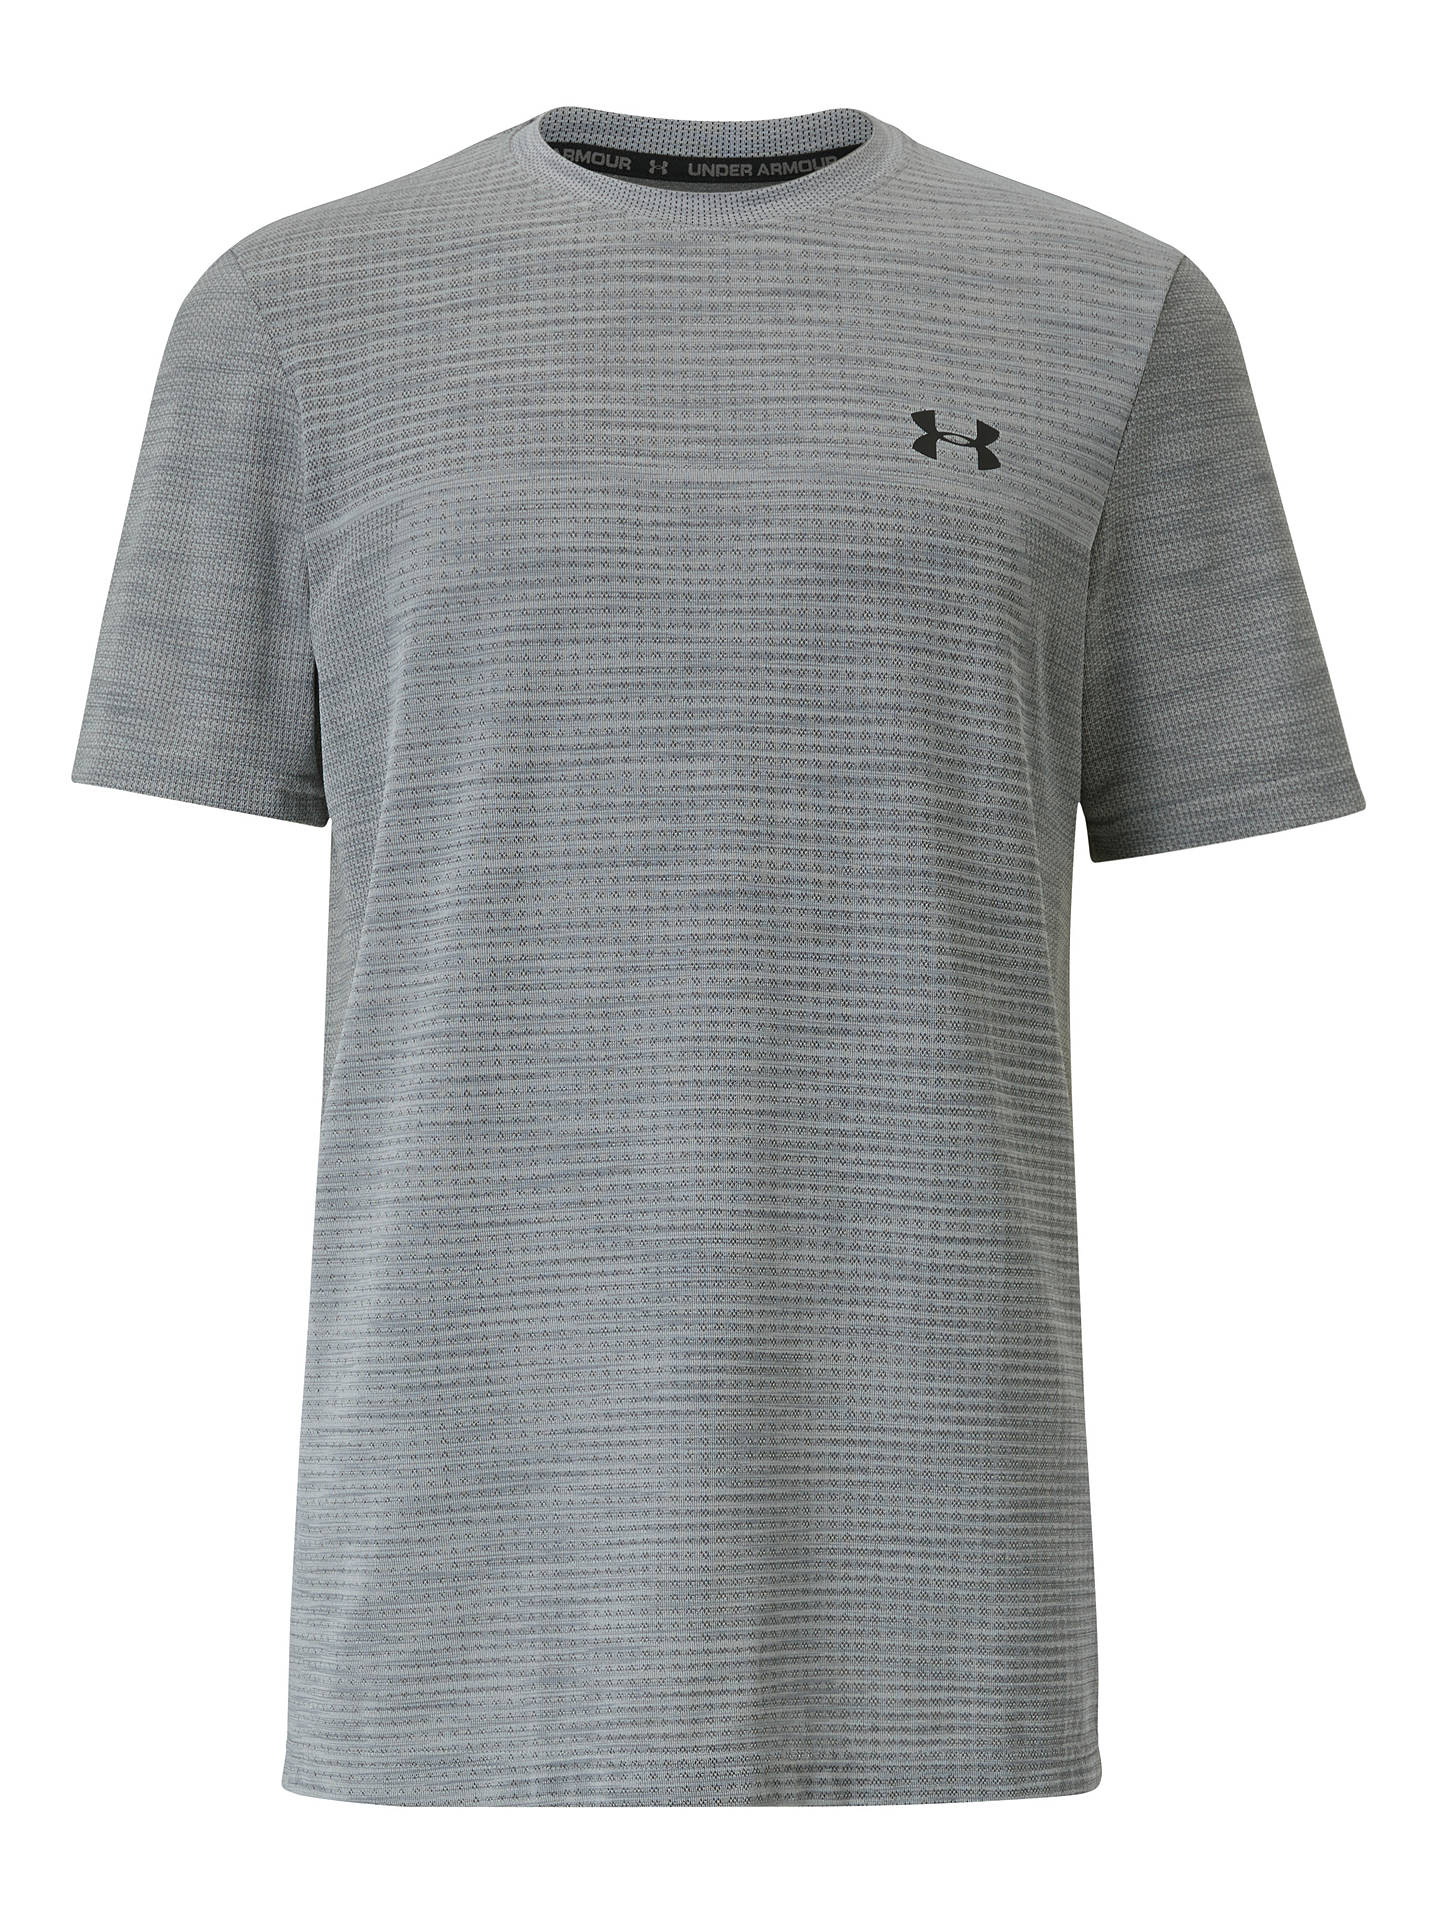 Buy Under Armour Seamless Training Top, Halo Grey/Black, S Online at johnlewis.com